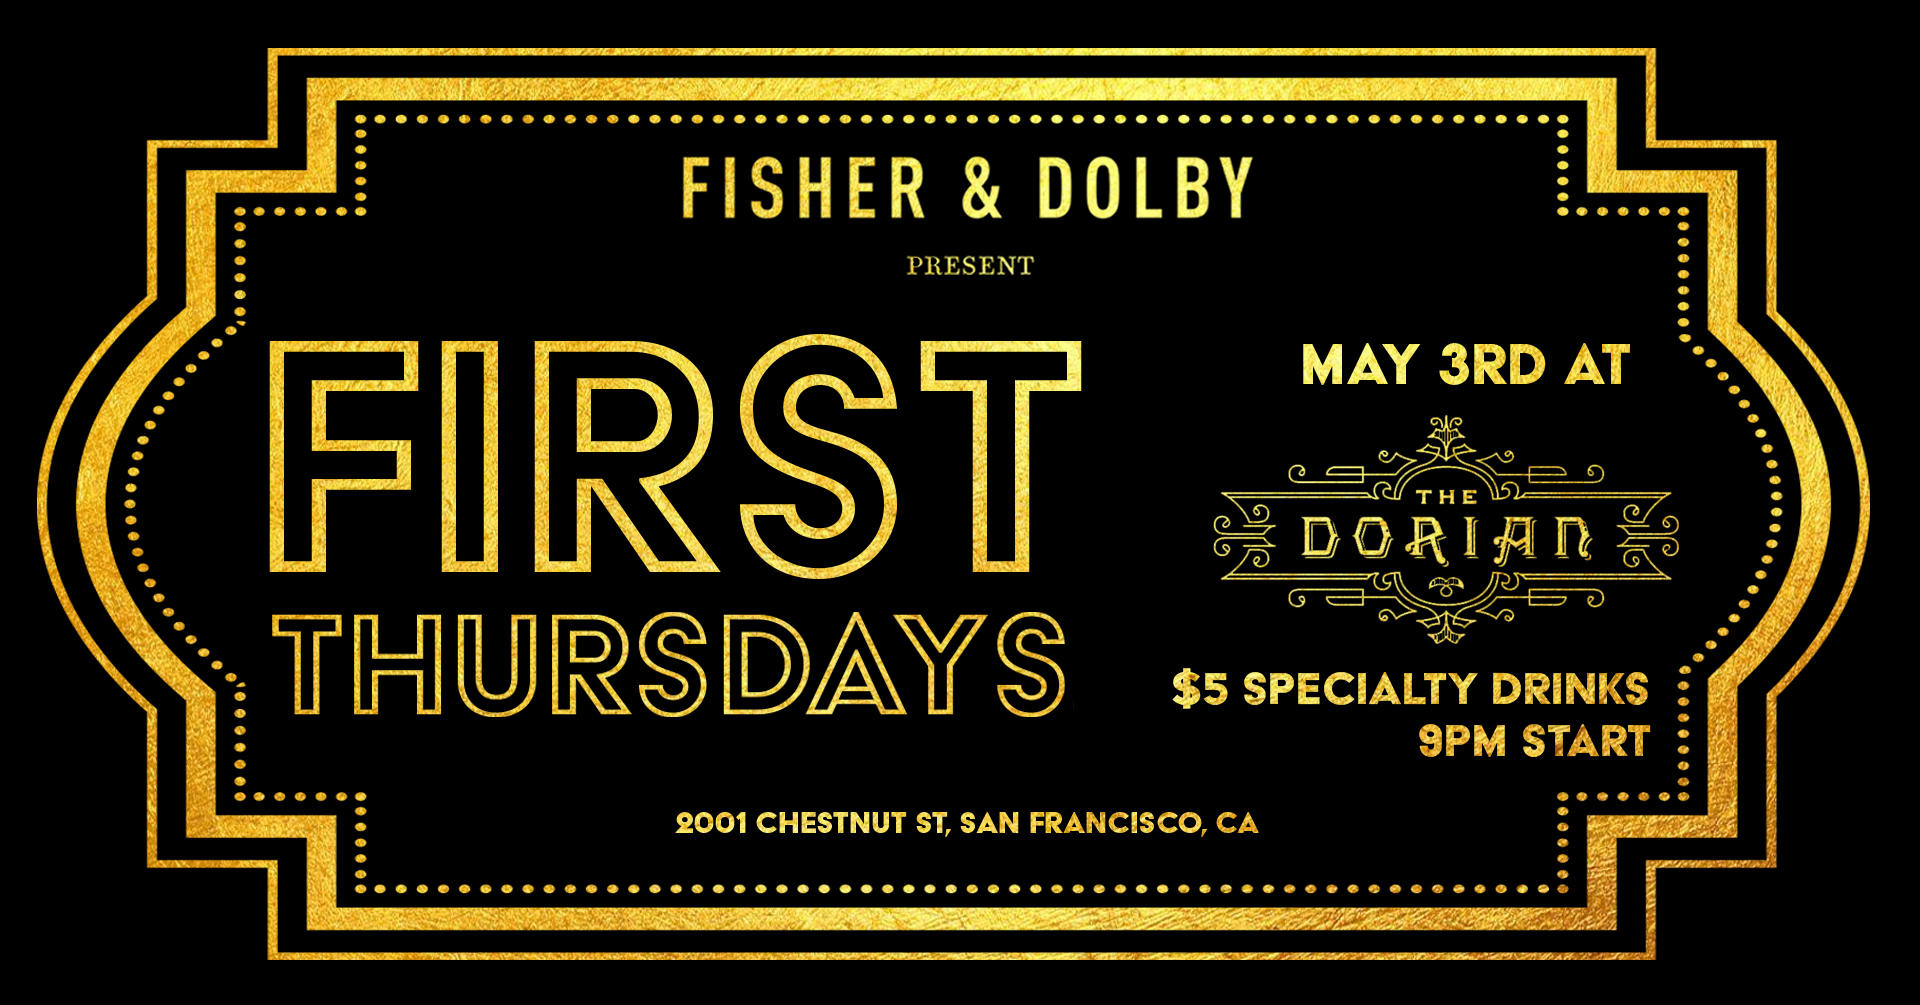 Fisher&Dolby-FB_FirstThursdays53.jpg